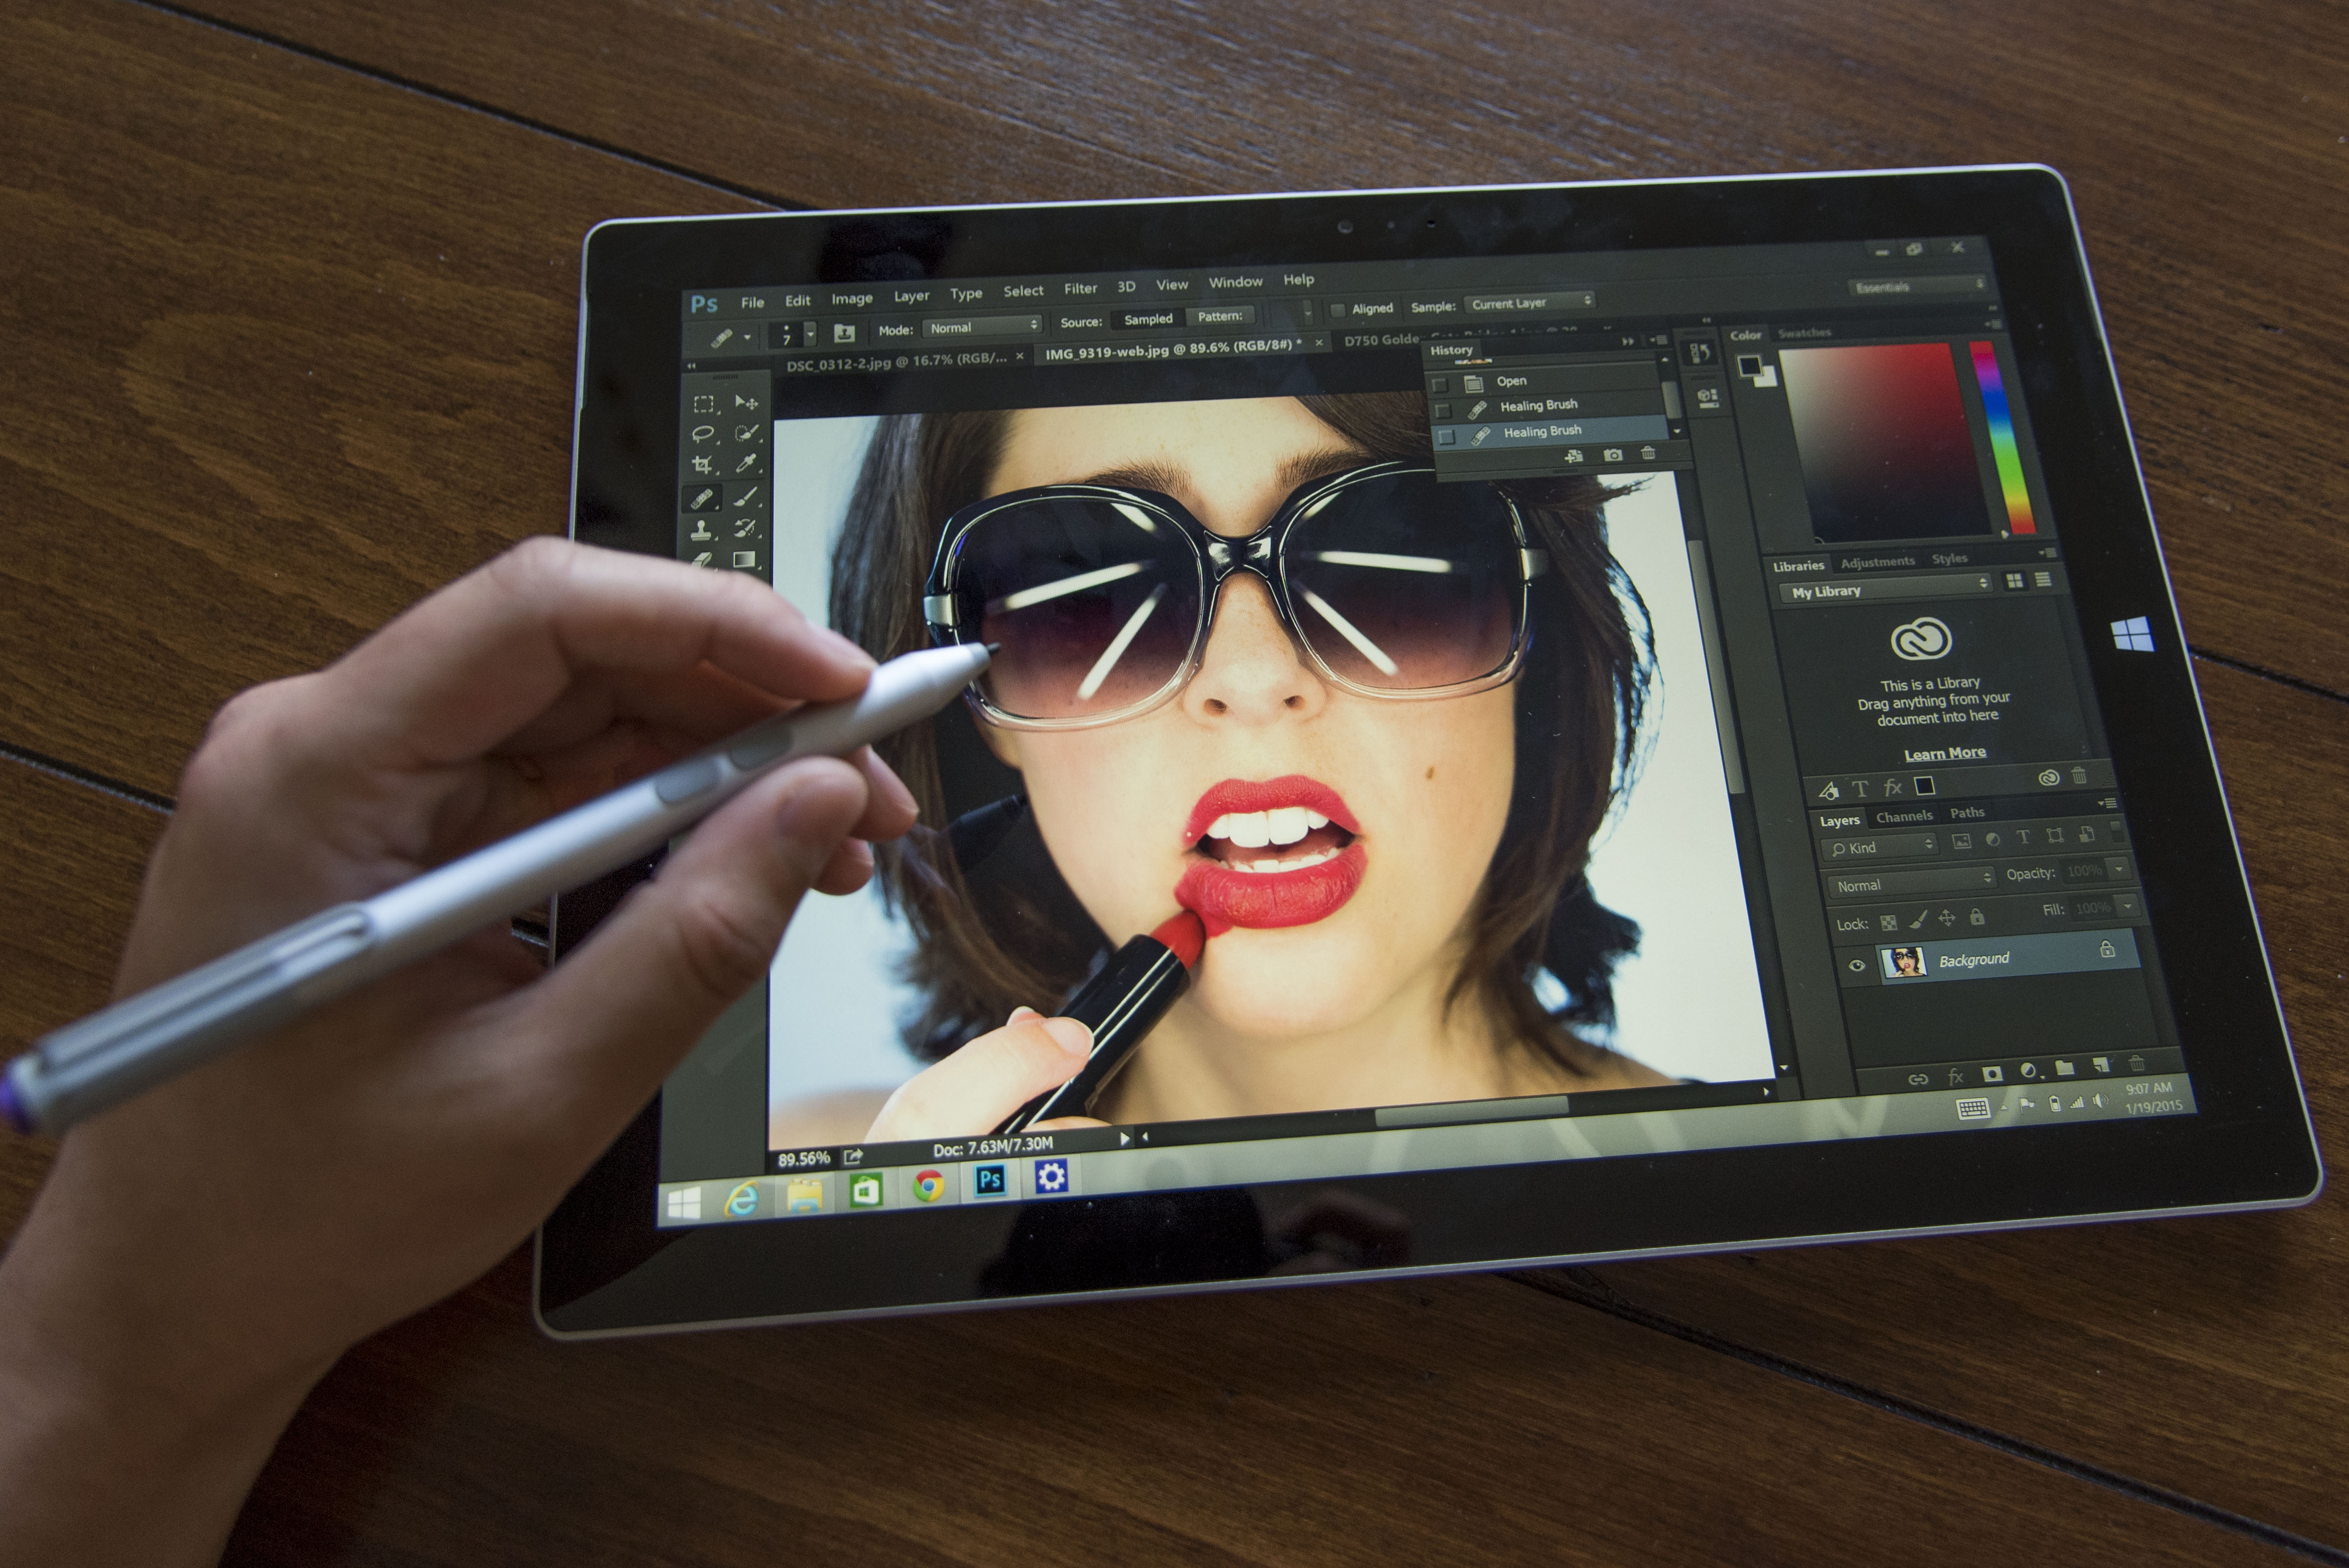 adobe photoshop touch workspace worth buying a surface pro 3 rh resourcemagonline com Adobe Photoshop Elements Adobe Photoshop Tools